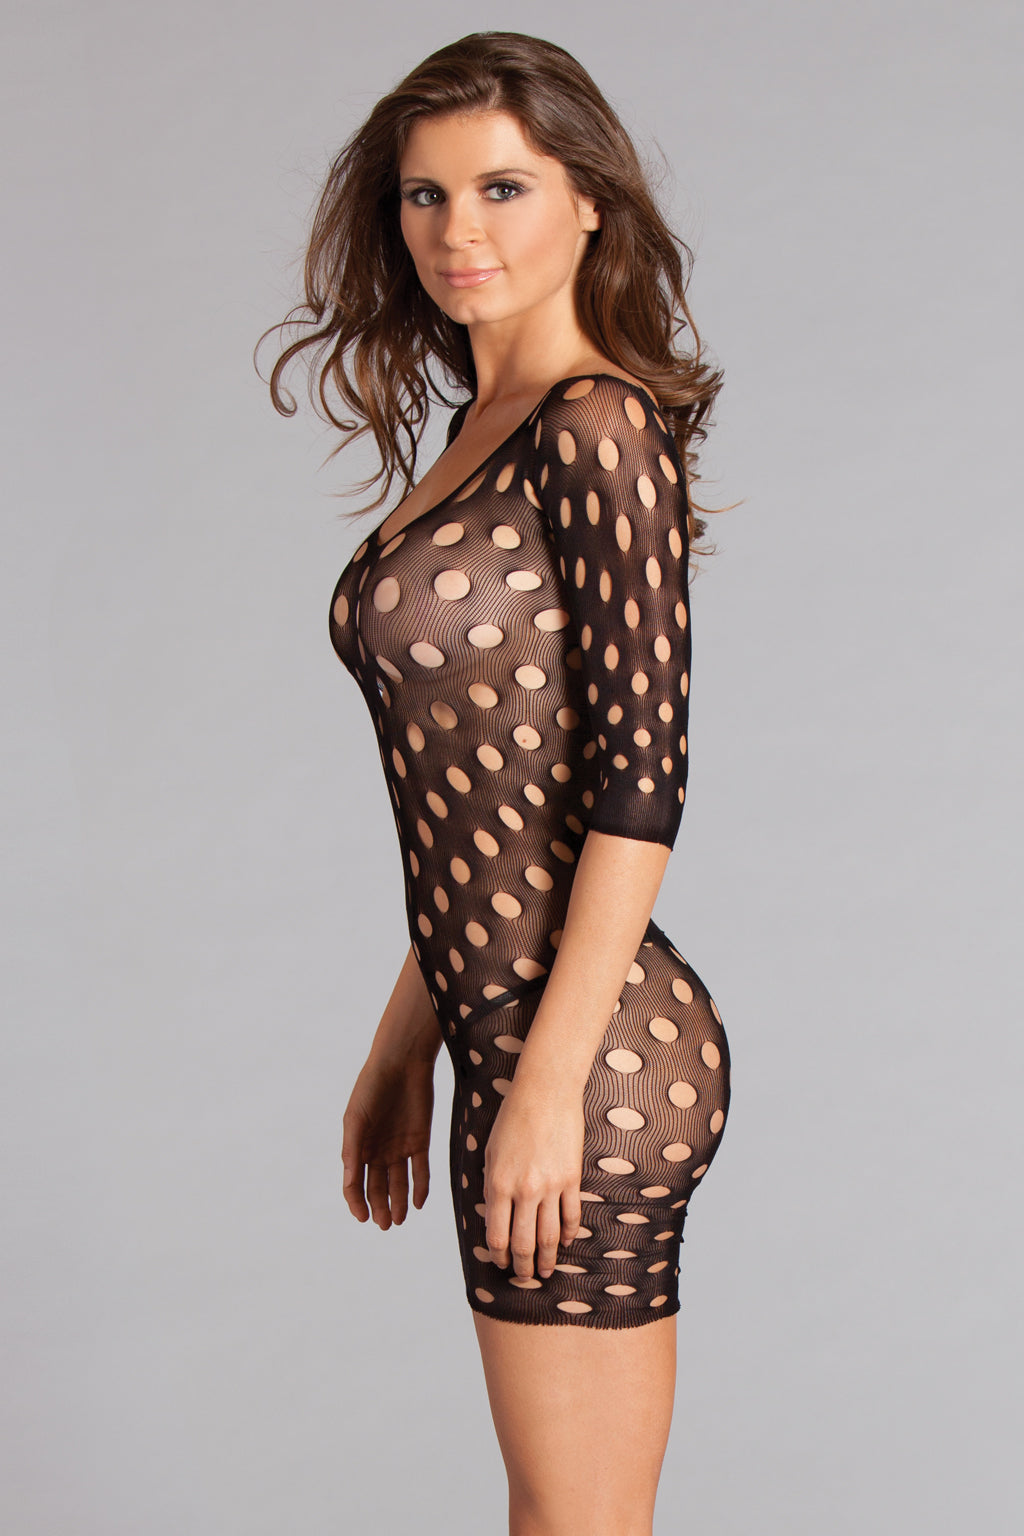 Connect the Dots Body Stocking Body Stocking- La La Trends